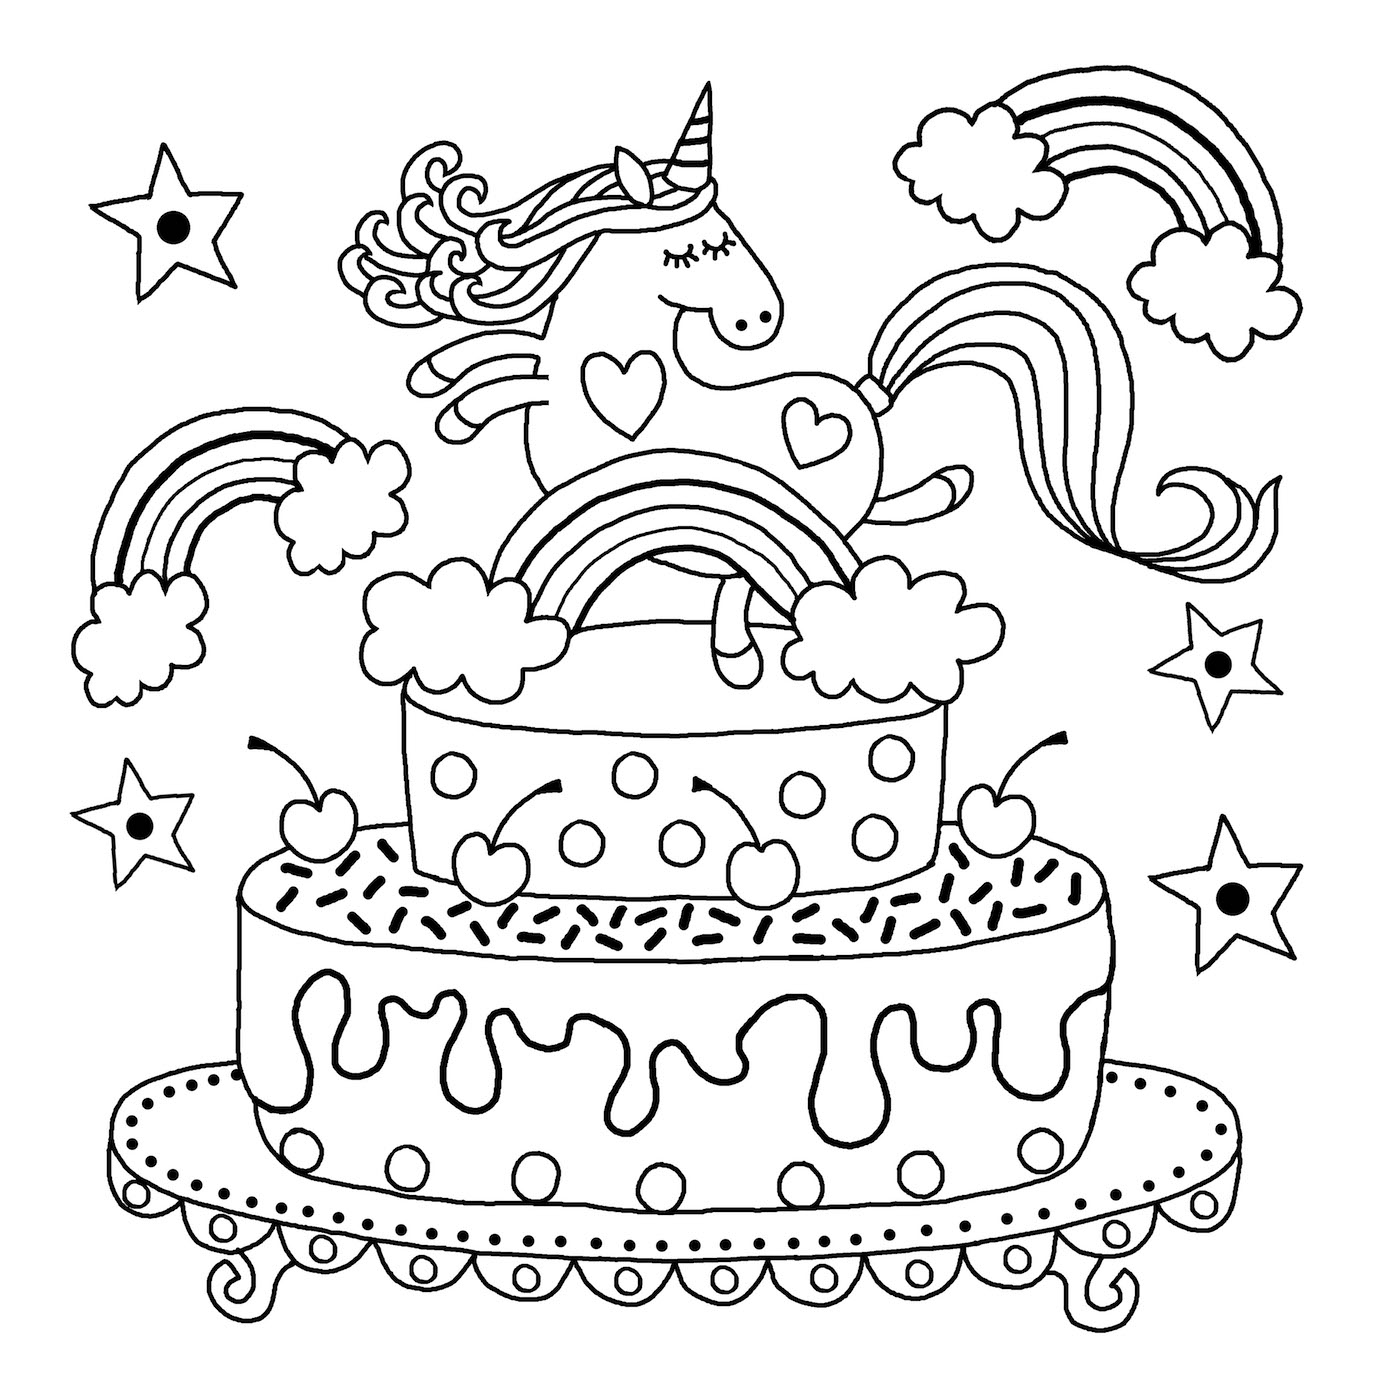 coloring unicorn kids drawing unicorns free to color for kids unicorns kids coloring pages coloring kids unicorn drawing